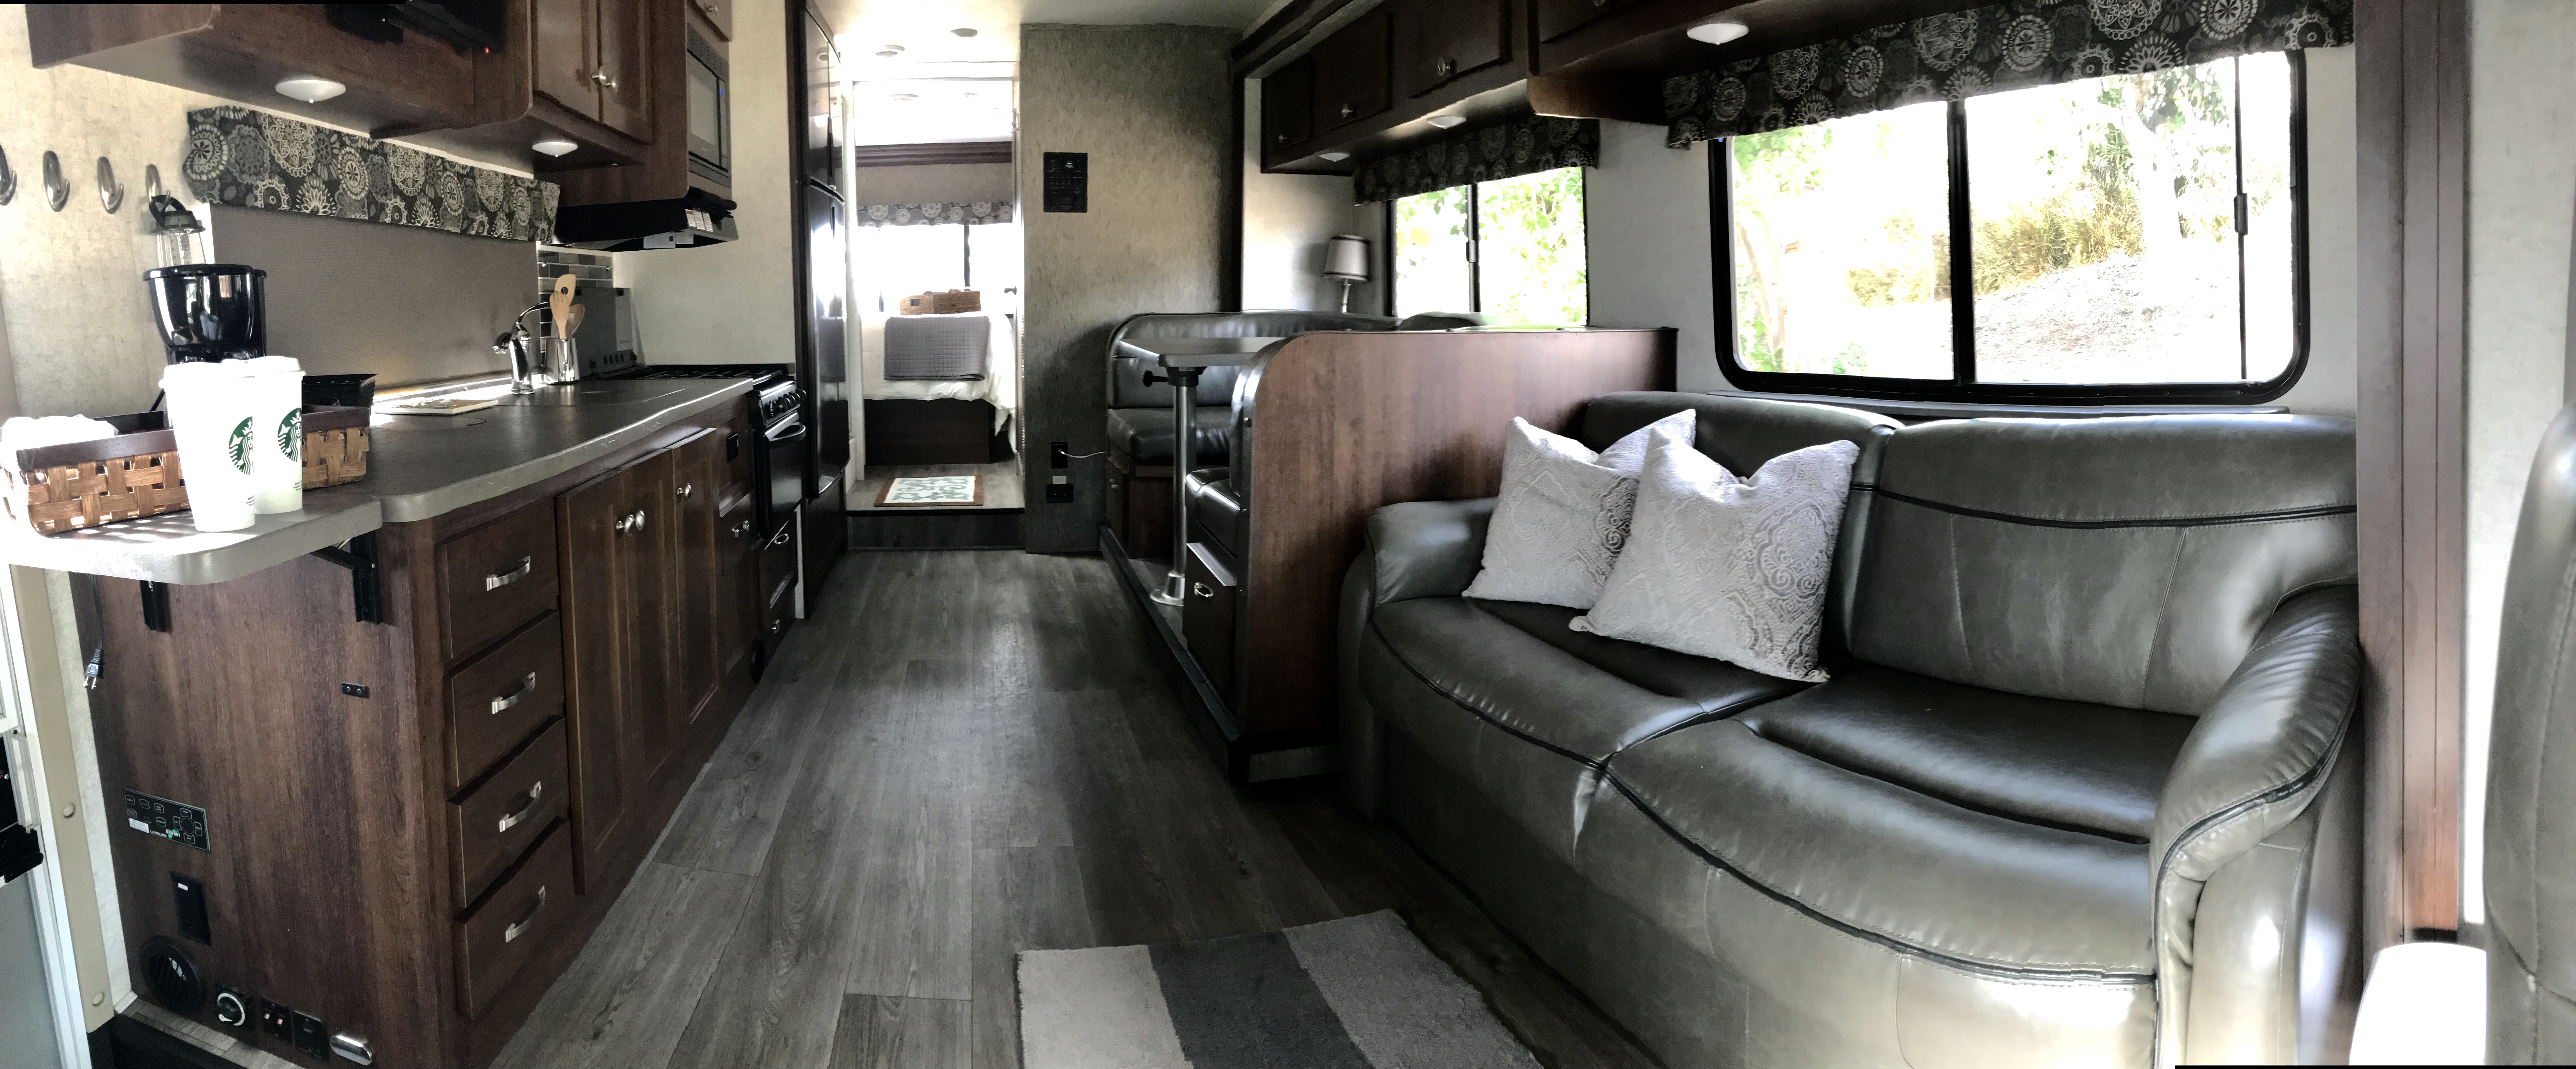 Our 2018, very modern home on wheels still smells new! Look how much light there is all the way to the back in the bedroom.  The master bed is fluffy with wonderful linens. We have lots of included extras.. Forest River Sunseeker 2018